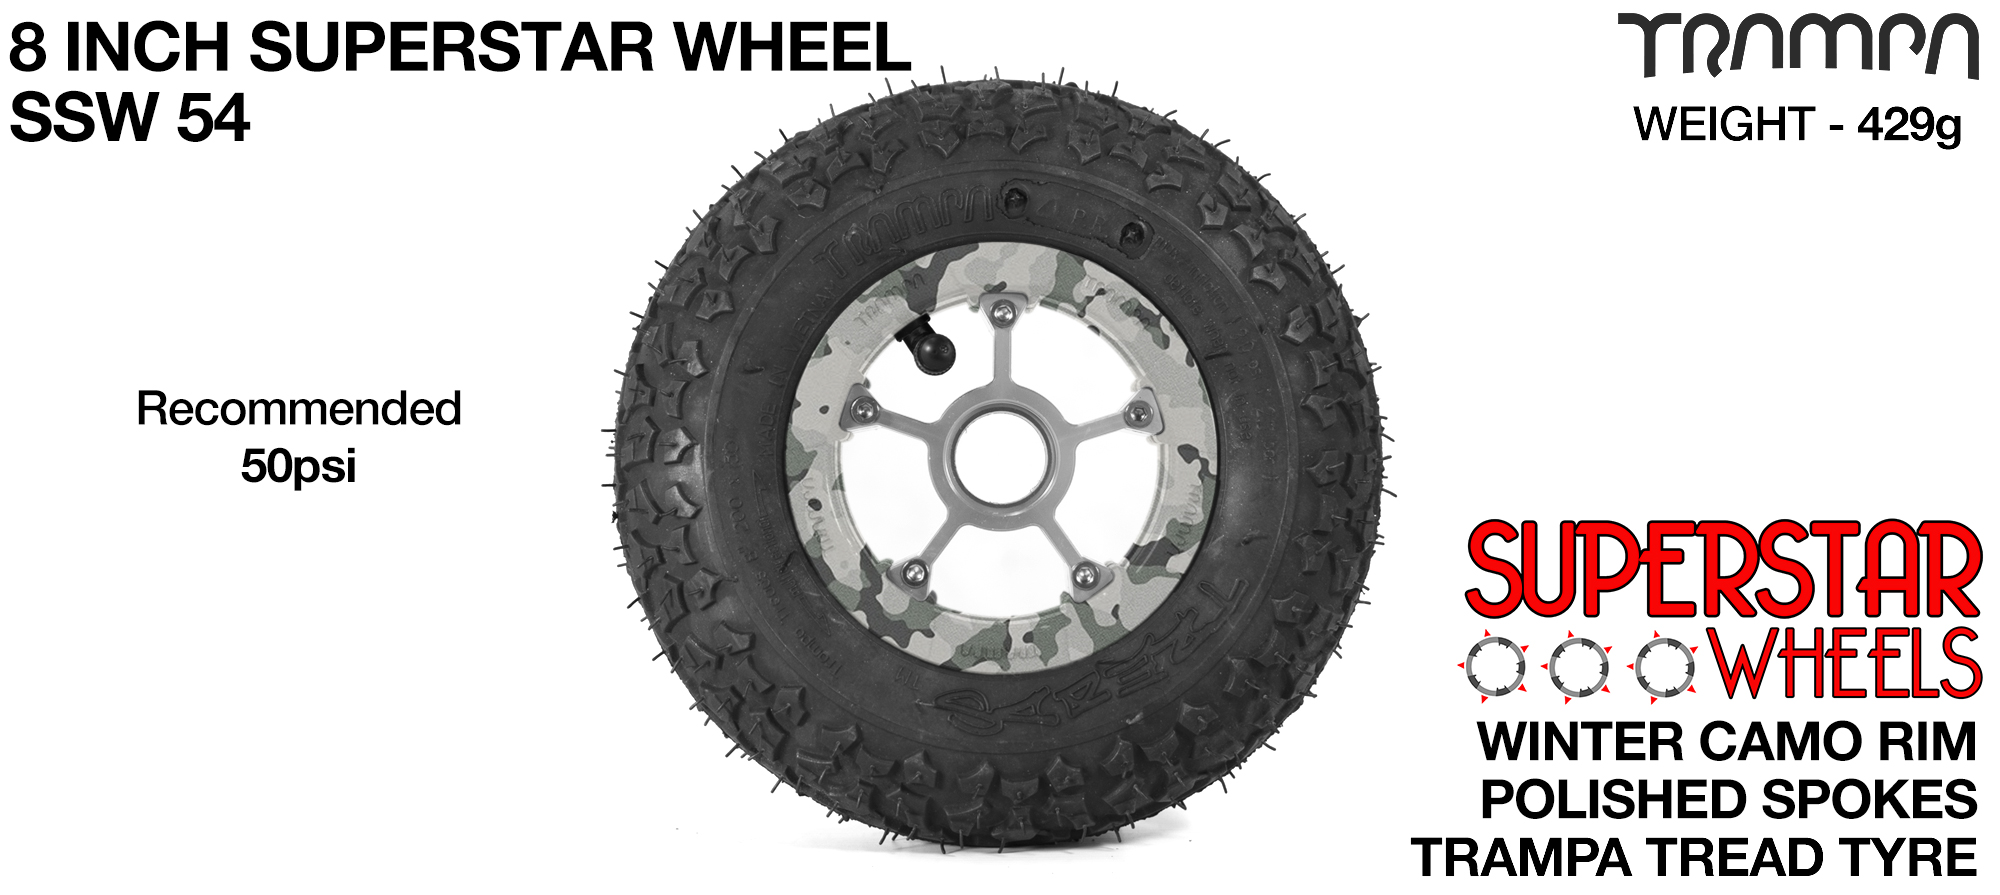 Superstar 8 inch wheel - Winter Camo Rim with Silver Anodised spokes & TRAMPA TREAD 8 Inch Tyres